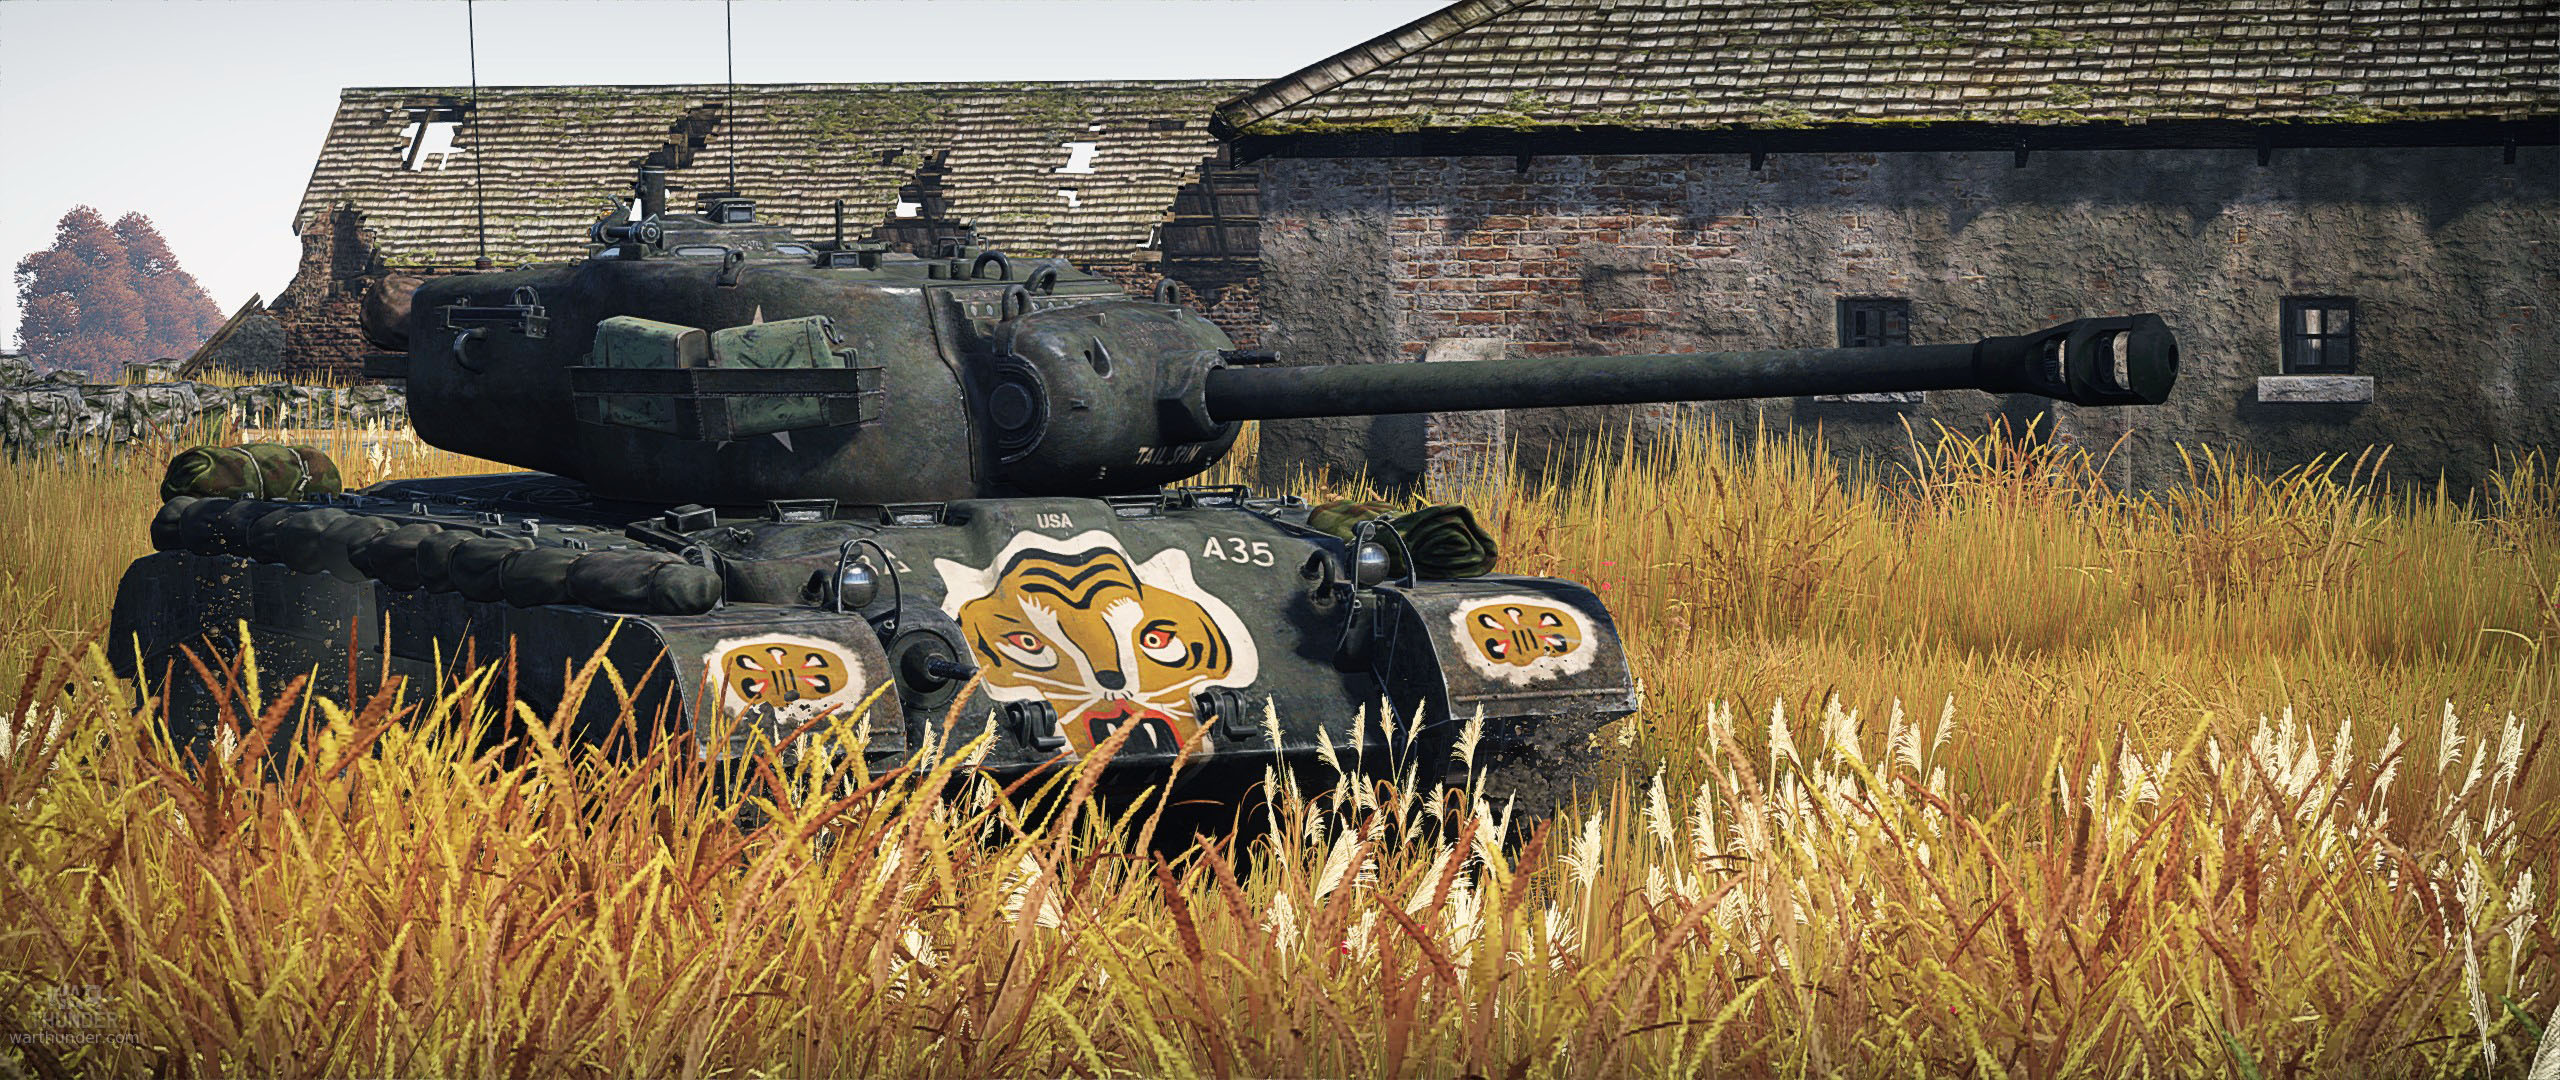 Vehicle Profile M26 Pershing Decal Included News